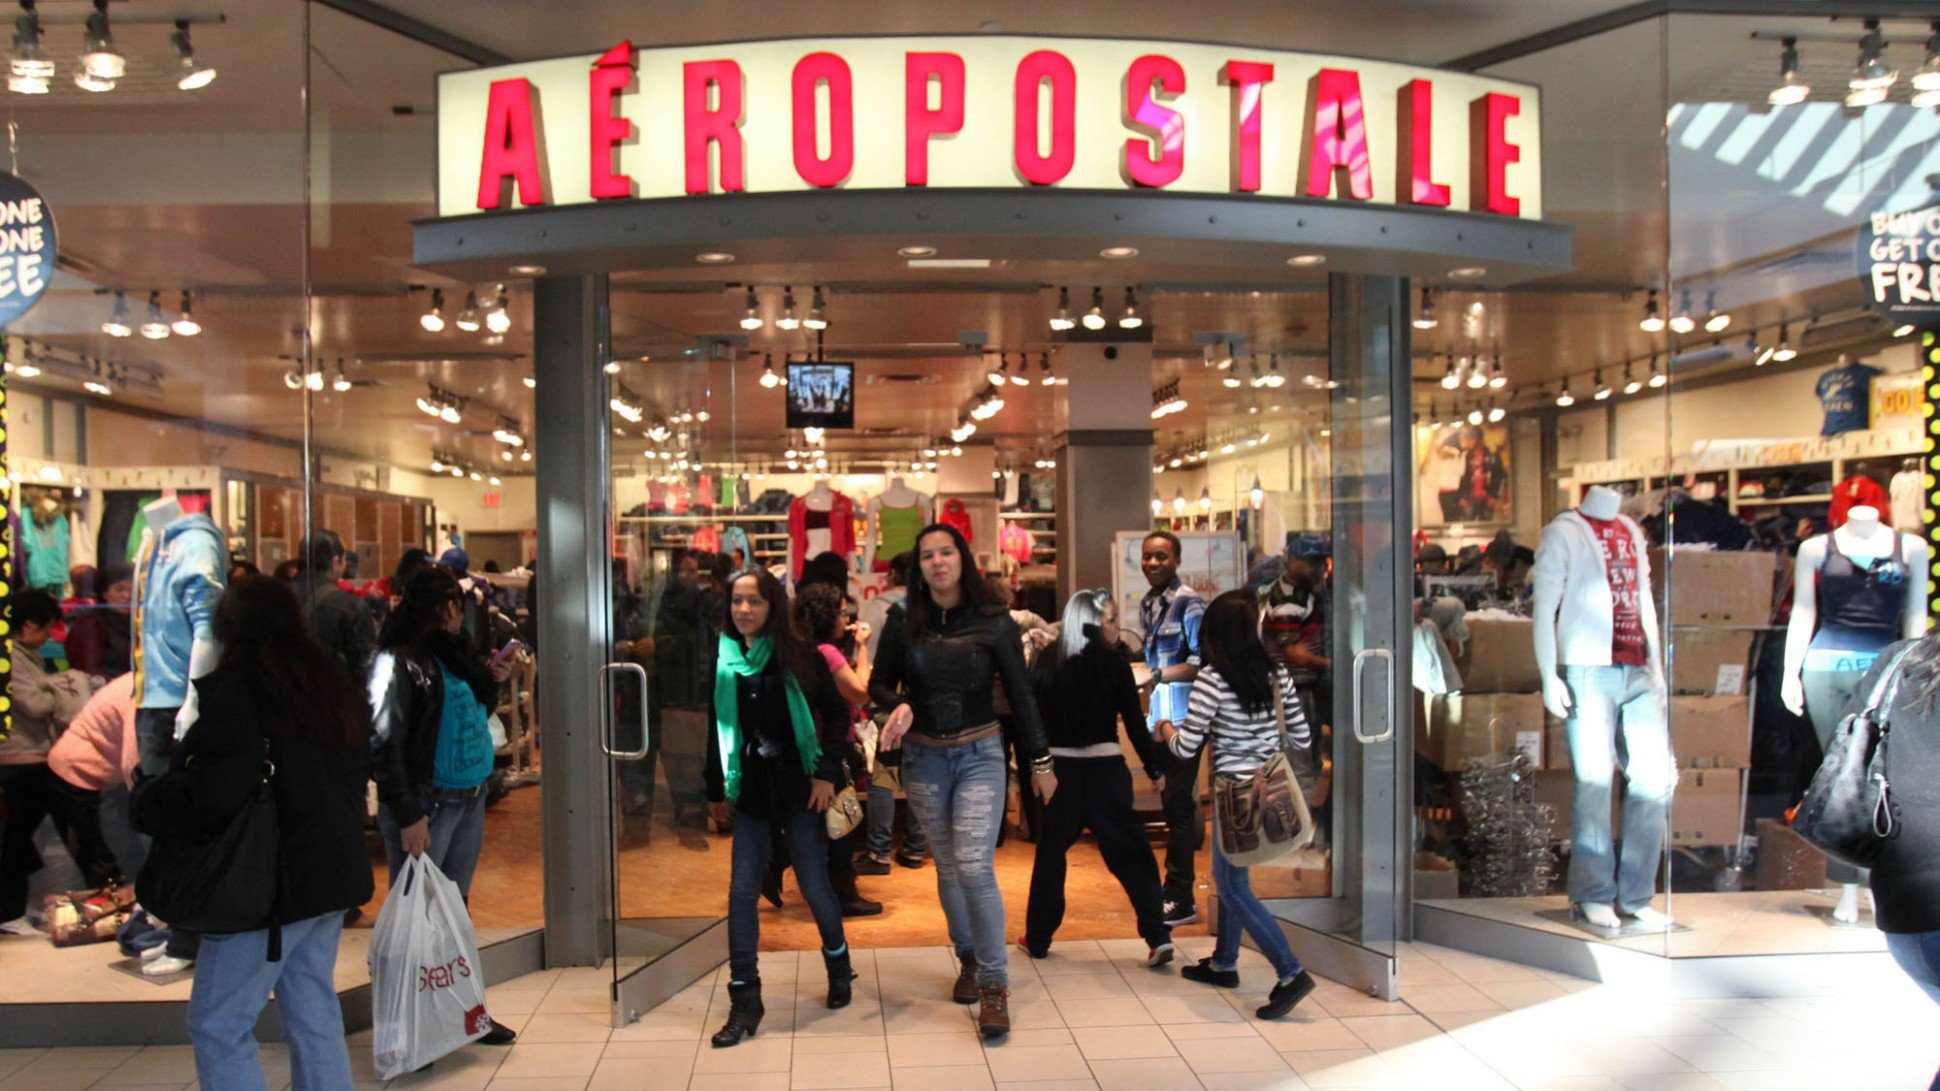 Aeropostale Opening 500 Stores: https://t.co/X4oifrhRZI https://t.co/dtwSSkUQEA